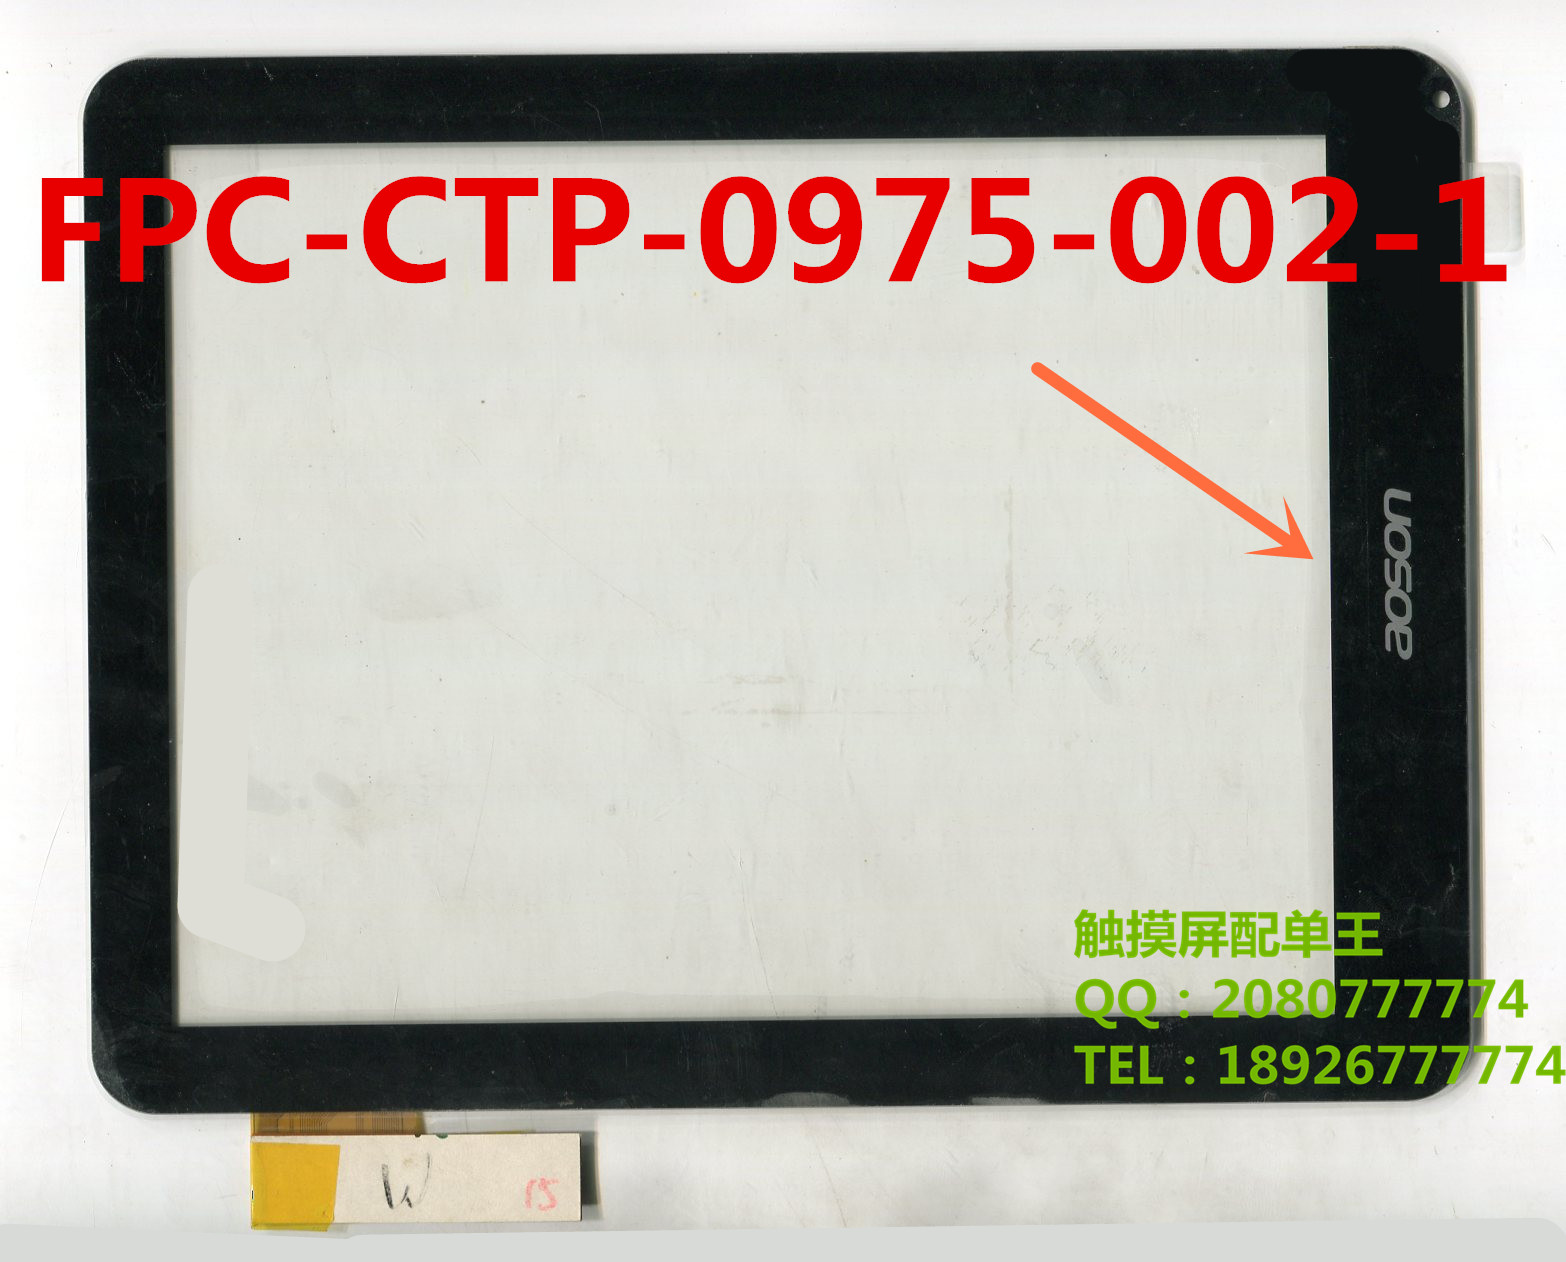 9.7inch touch screen Digitizer panel sensor Glass FPC-CTP-0975-002-1 FPC-CTP-0975-017-5 FPC-CTP-0975-006-2 FPC-CTP-0975-082-2 new 9 7 inch touch screen panel digitizer glass sensor replacement for oysters t34 tablet pn fpc ctp 0975 096 1 free shipping